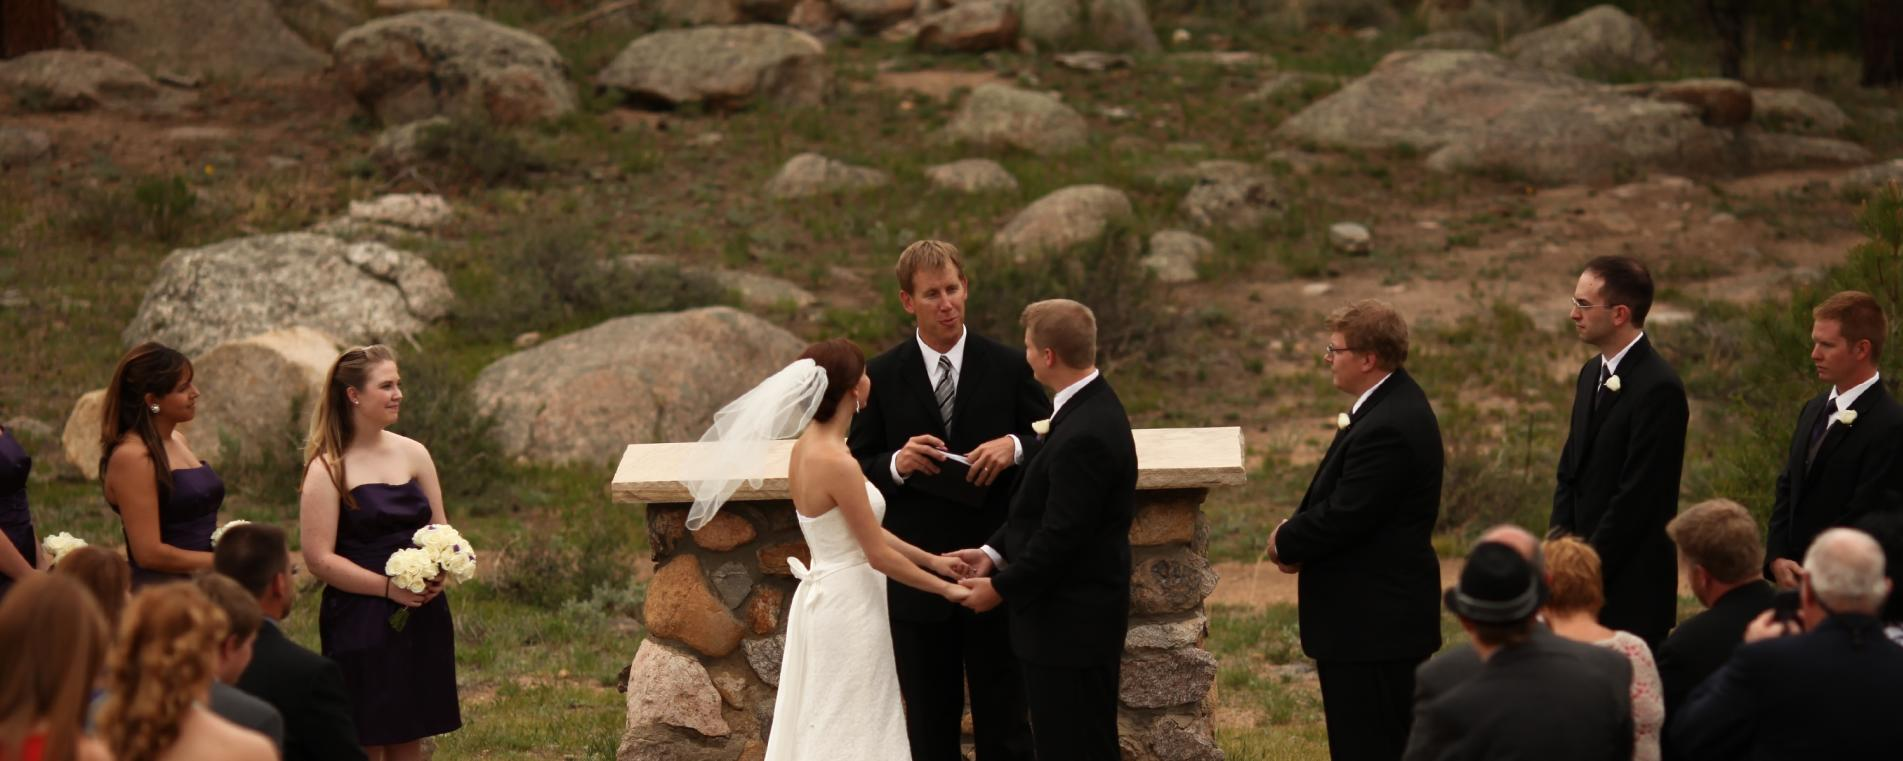 A Variety of Outdoor Wedding Venues in Estes Park